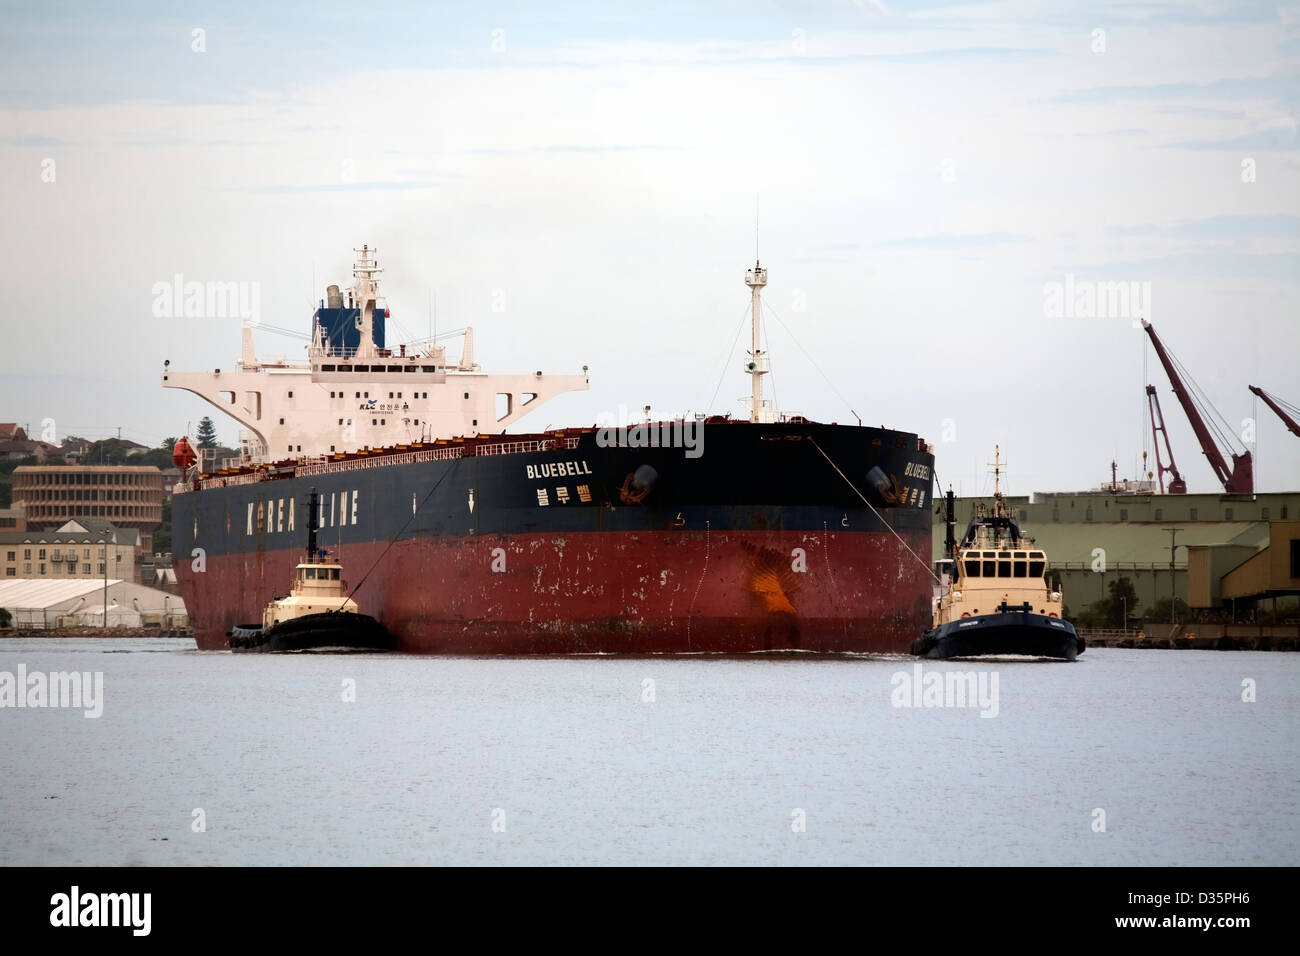 MV Bluebell a Dry Bulk Carrier arriving to load coal from Newcastle New South Wales Australia with the assistance - Stock Image